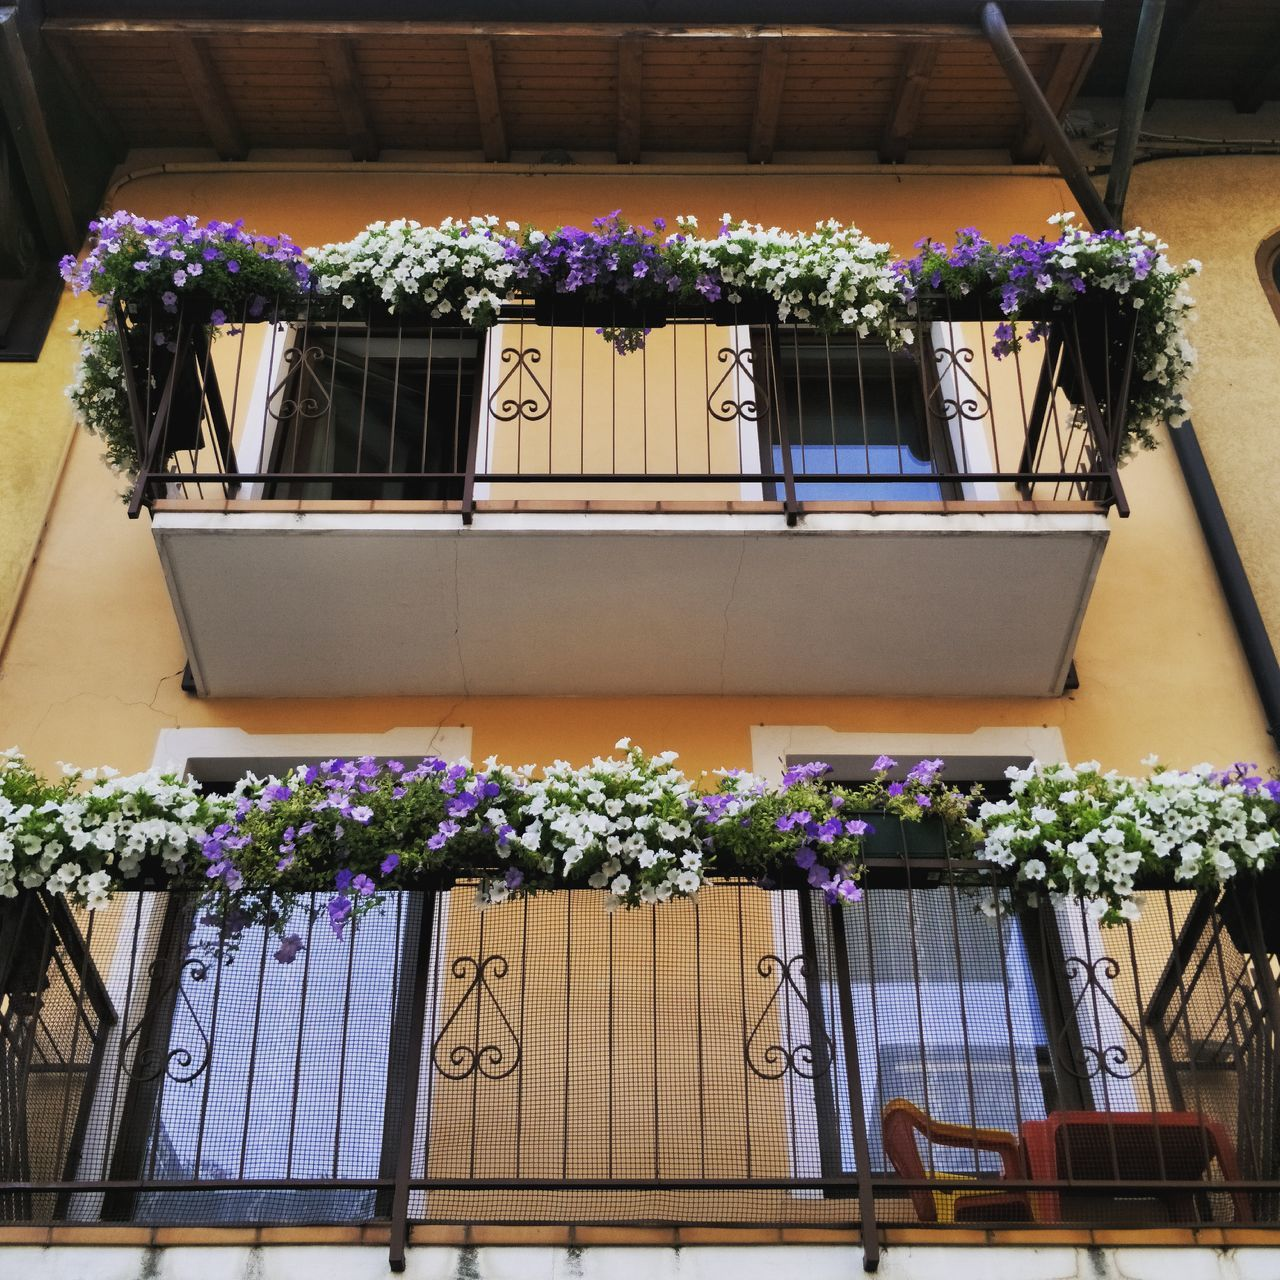 flowering plant, flower, plant, potted plant, flower pot, window box, nature, no people, freshness, growth, architecture, day, vulnerability, fragility, balcony, beauty in nature, seat, building exterior, built structure, chair, outdoors, purple, flower arrangement